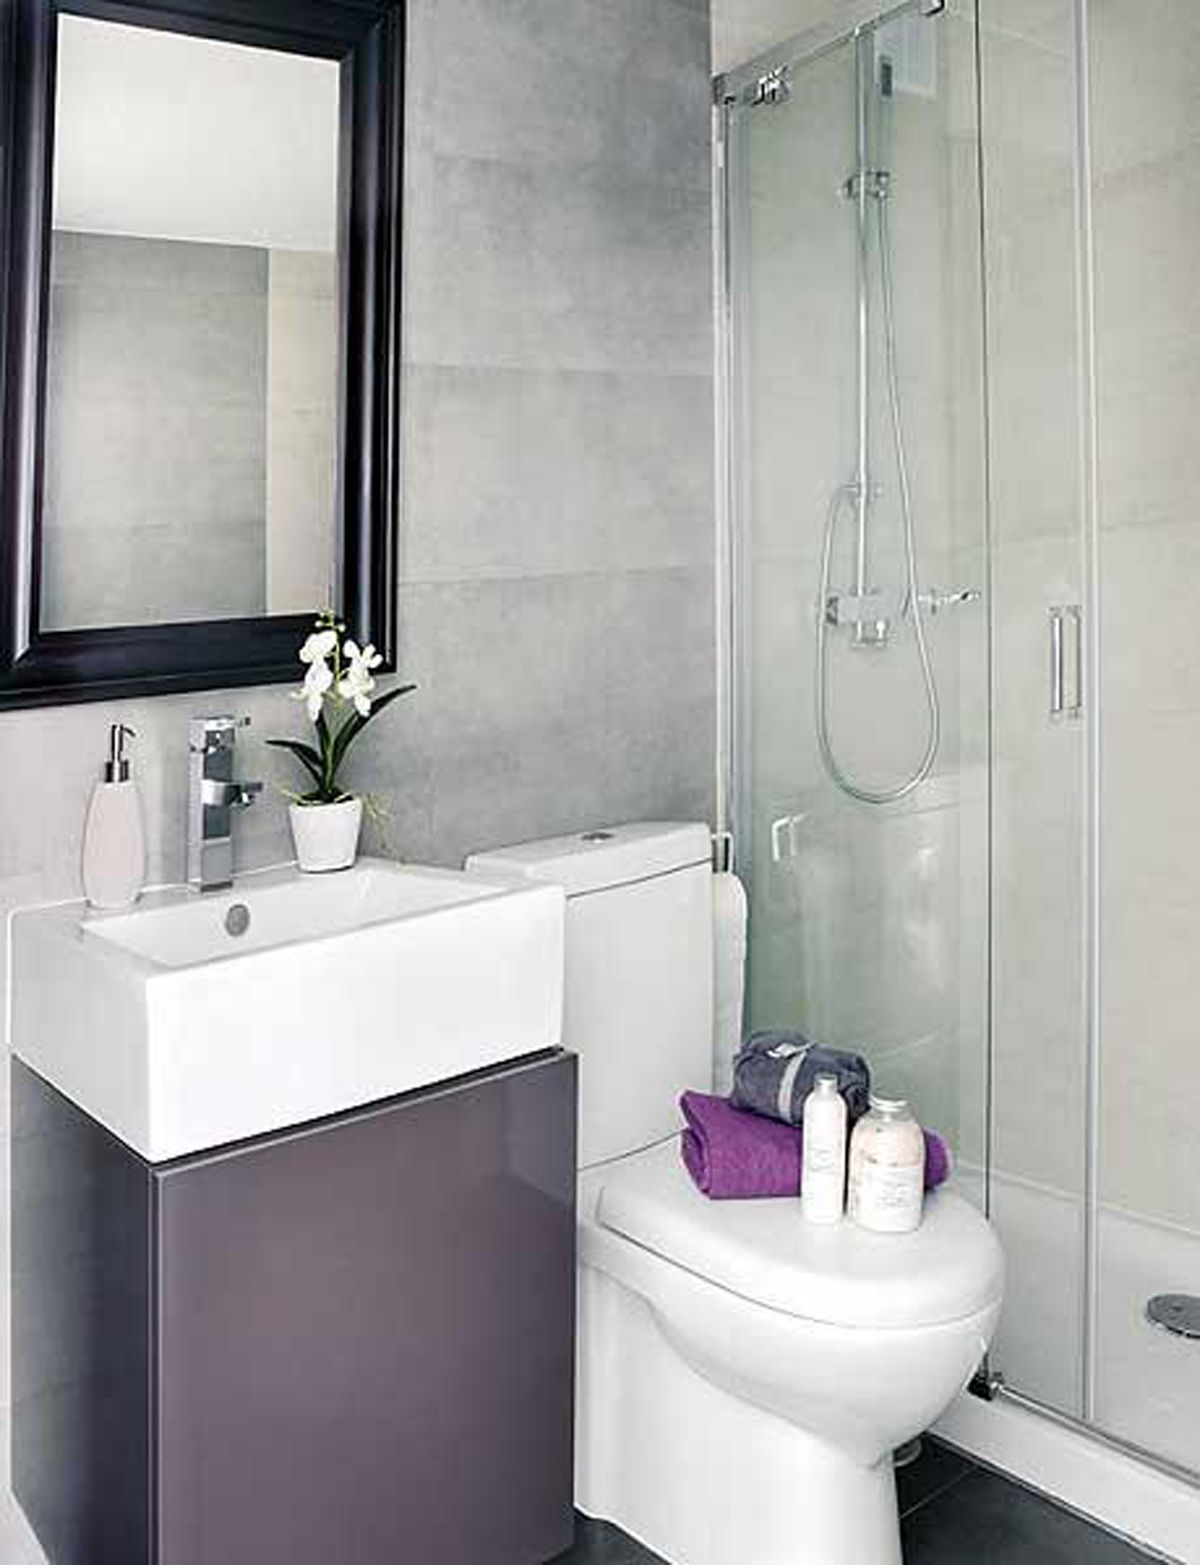 Modern Bathroom Design Ideas For Small Bathrooms intrinsic interior design applied in small apartment architecture